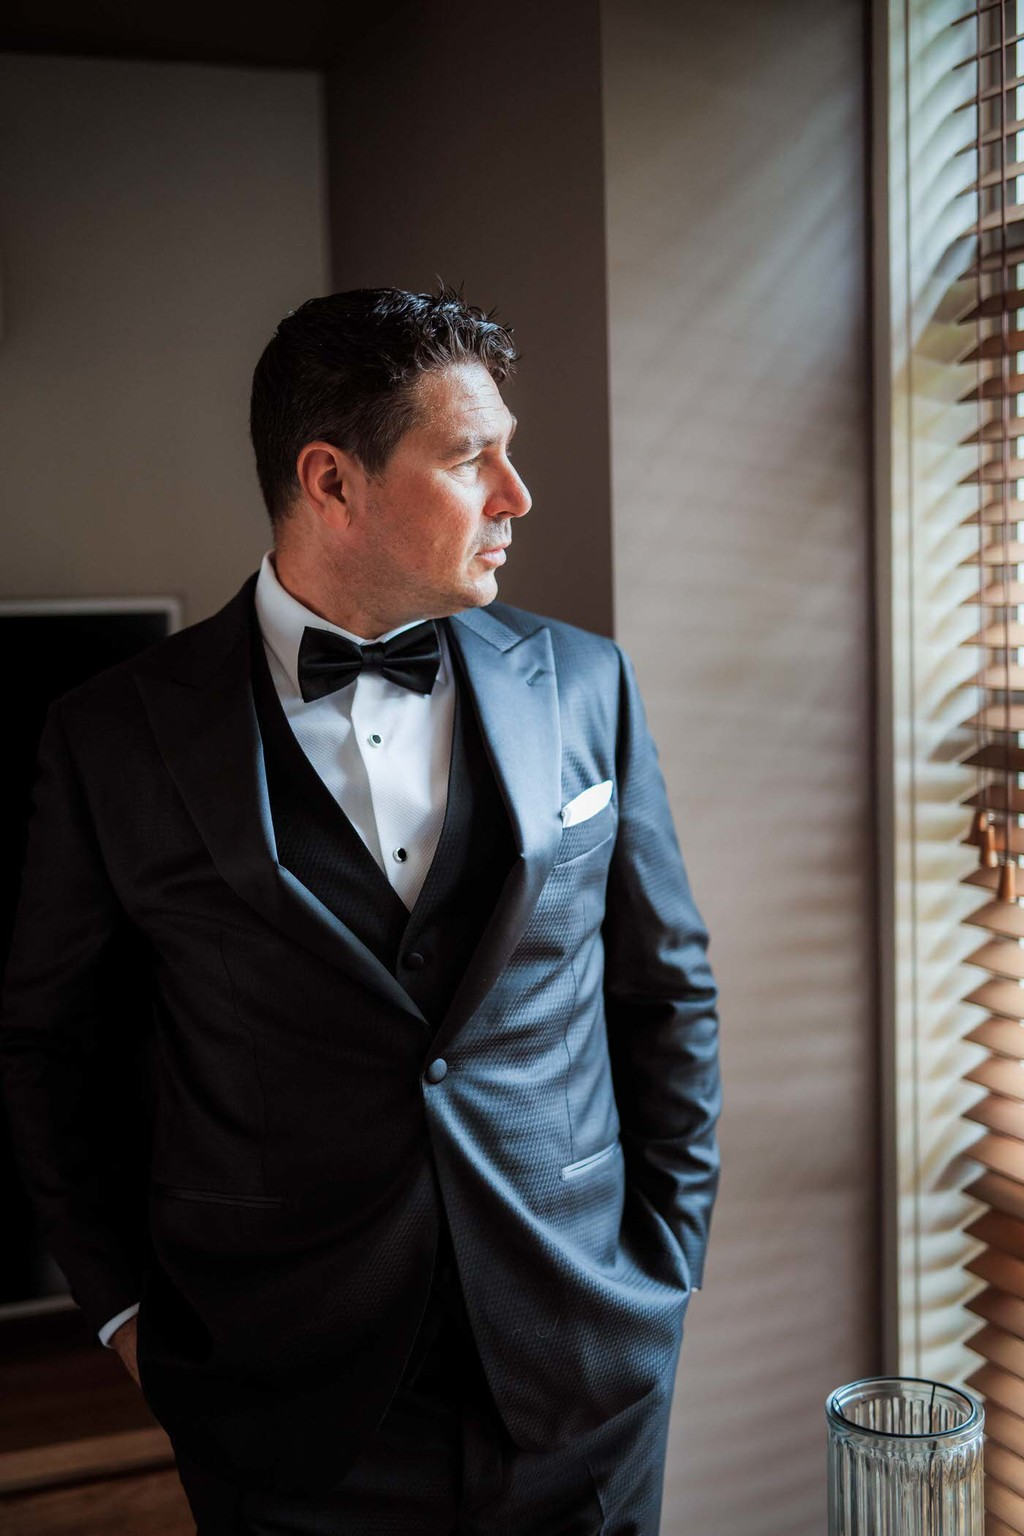 old hollywood inspired wedding - Clarte Photography - groom in tuxedo